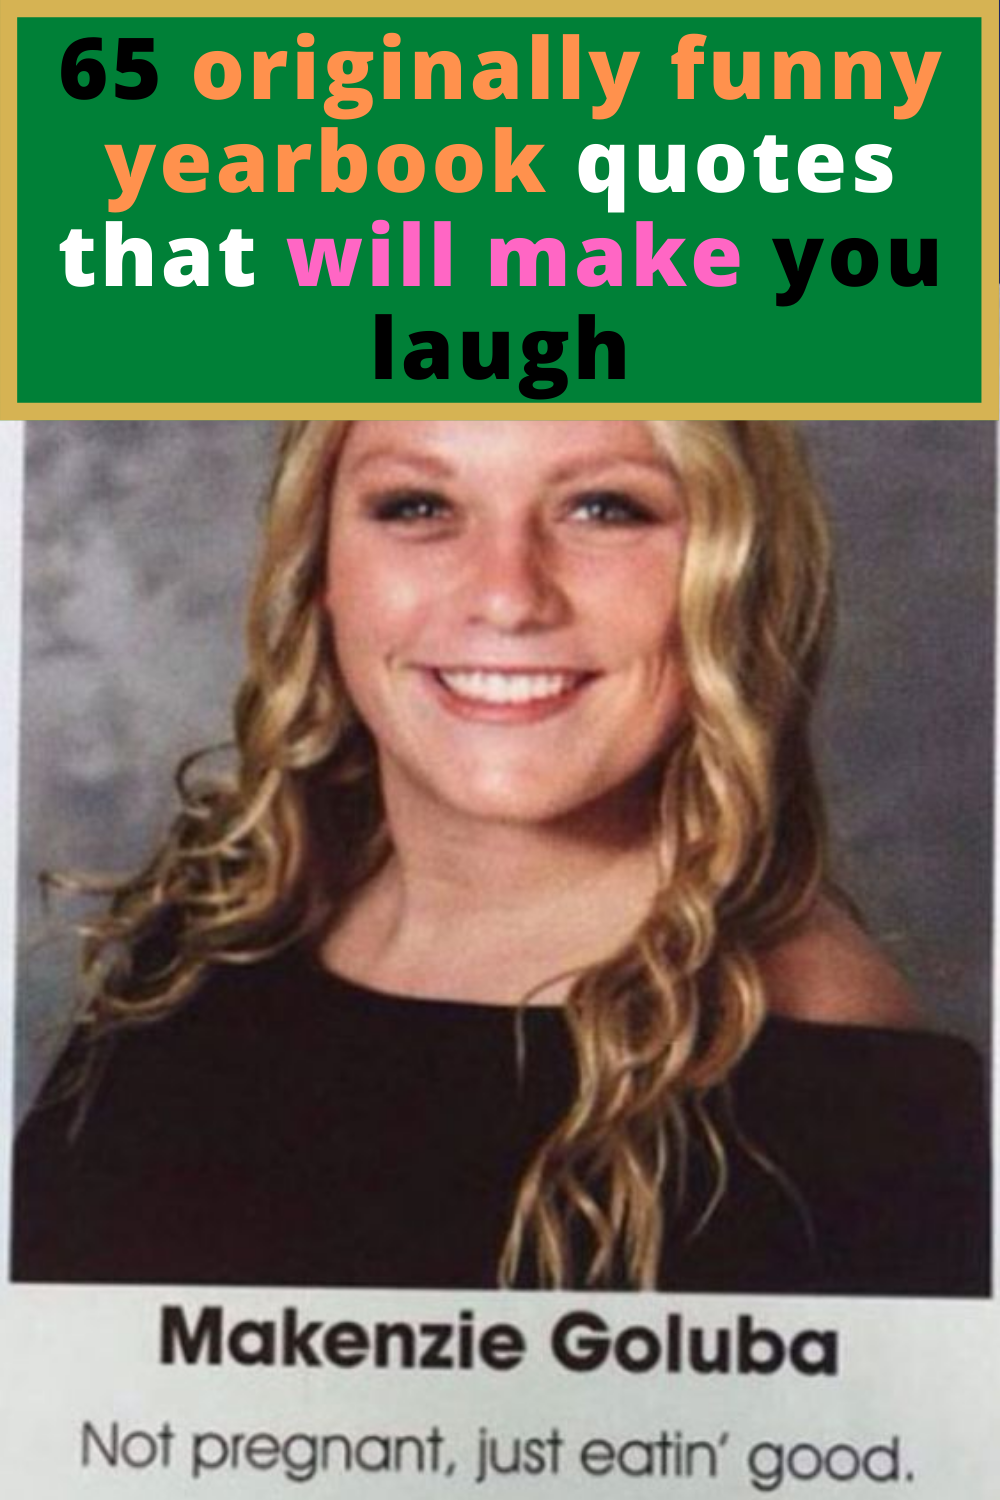 60 Hilariously Original Student Yearbook Quotes That Made Everyone Laugh Yearbook Quotes Funny Yearbook Quotes Funny Yearbook